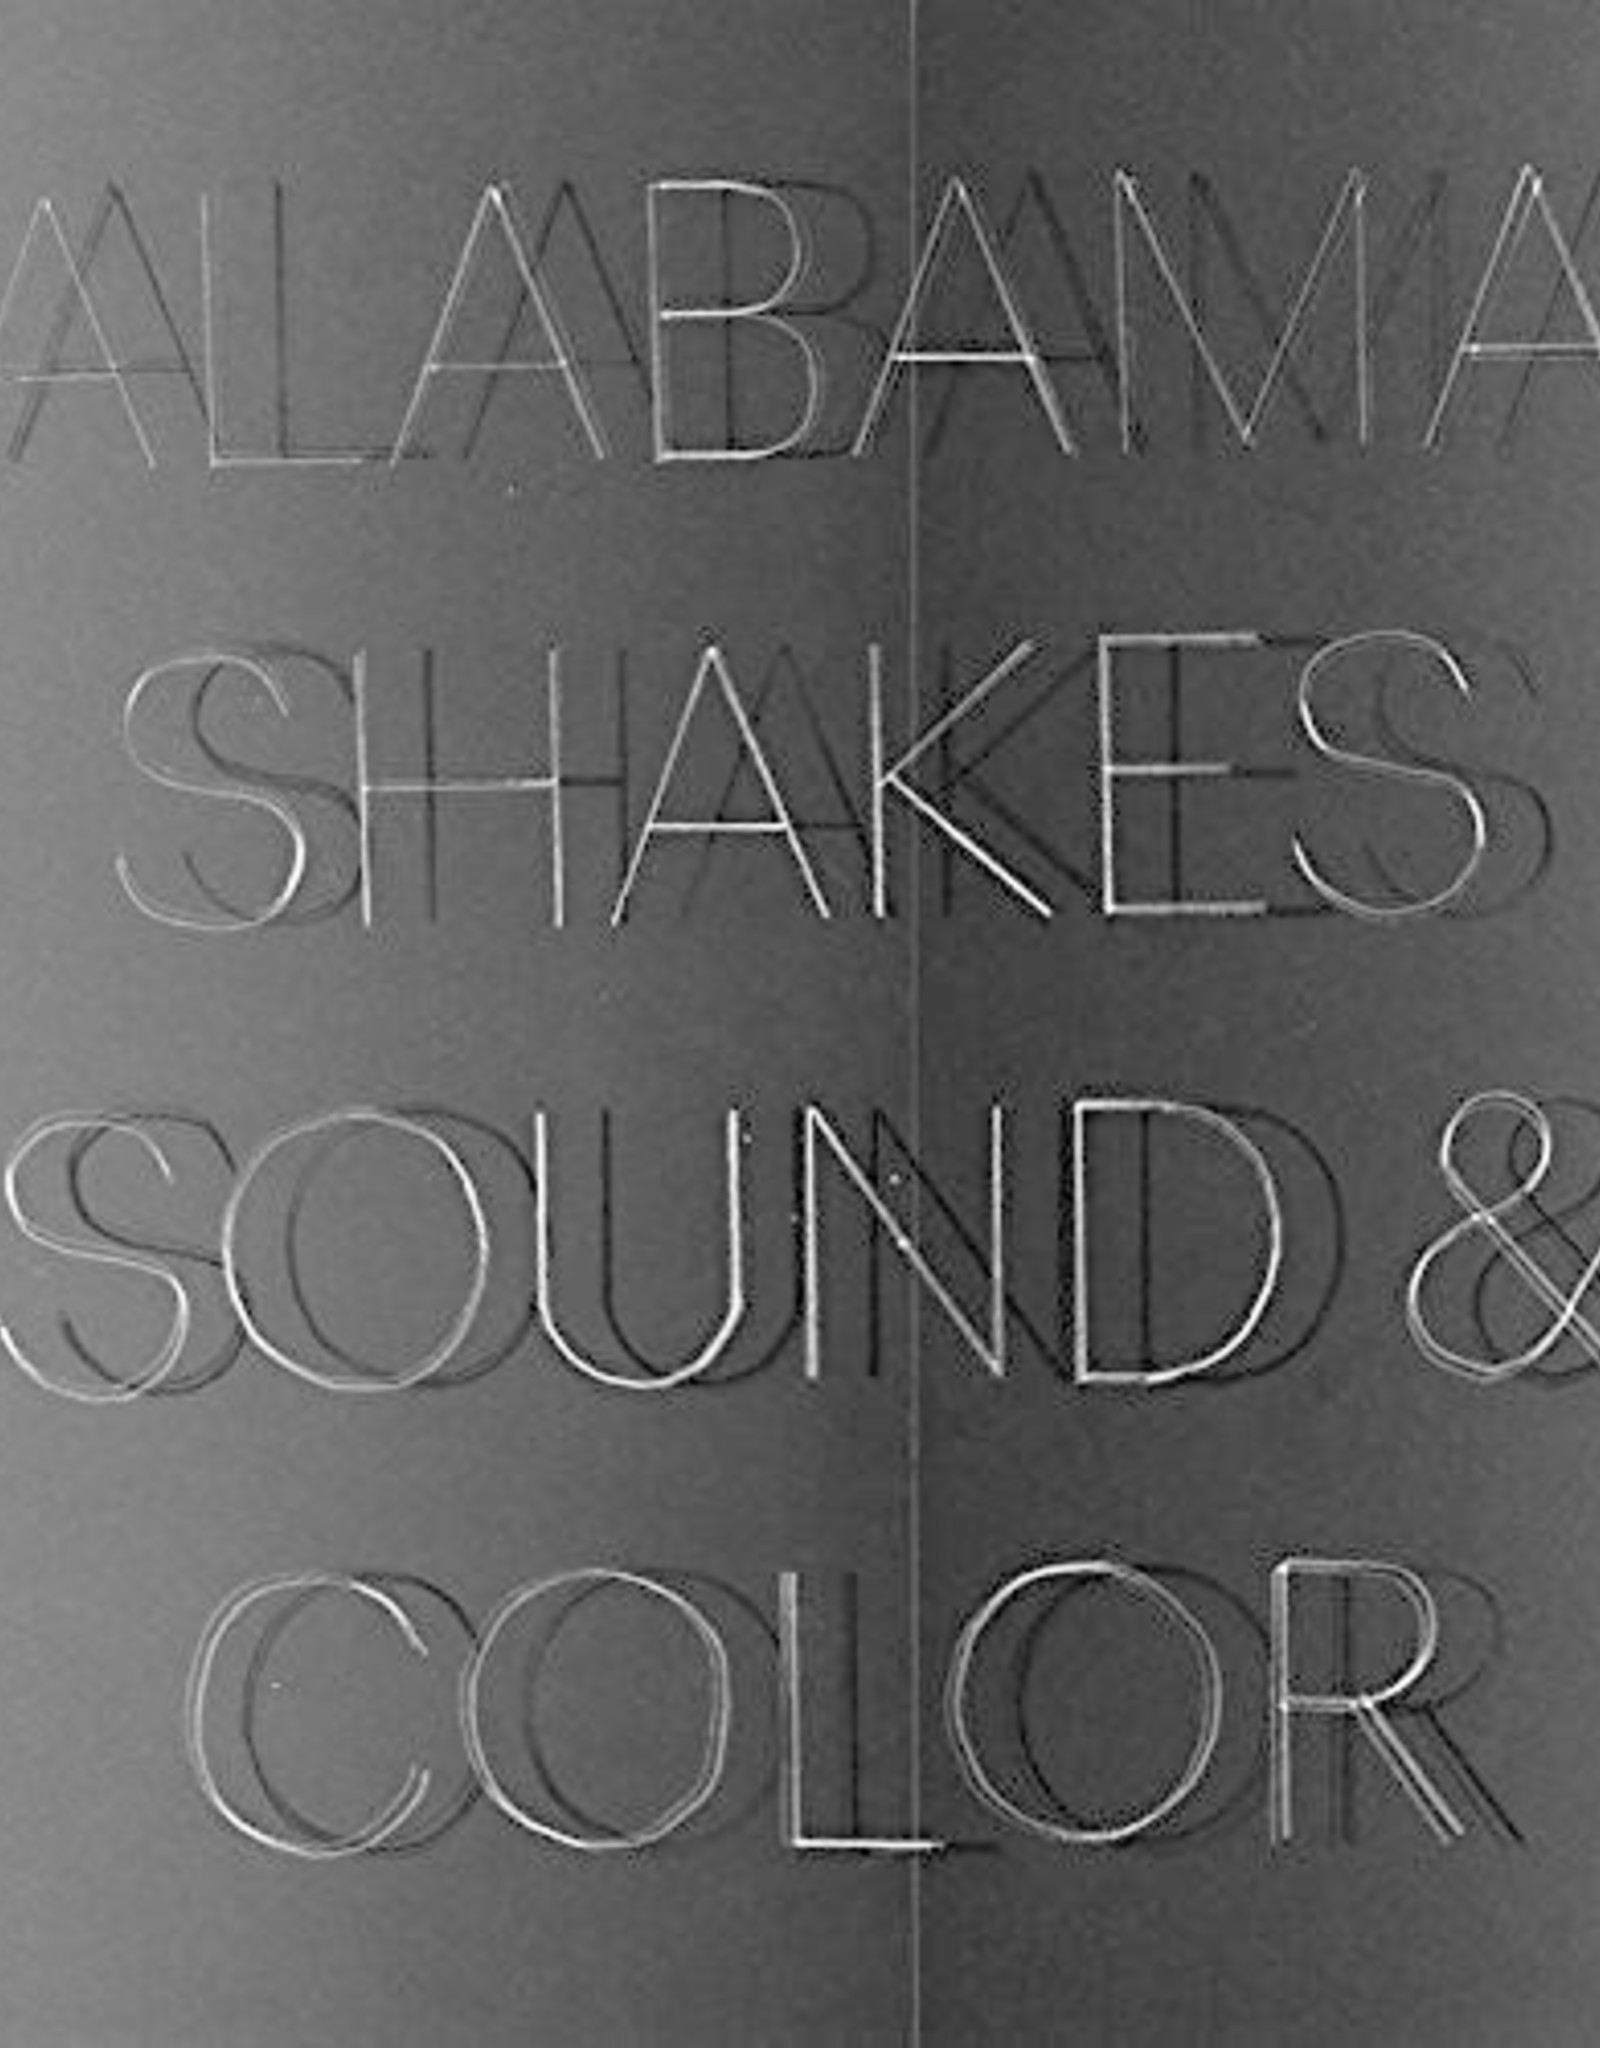 Alabama Shakes/Sound & Color